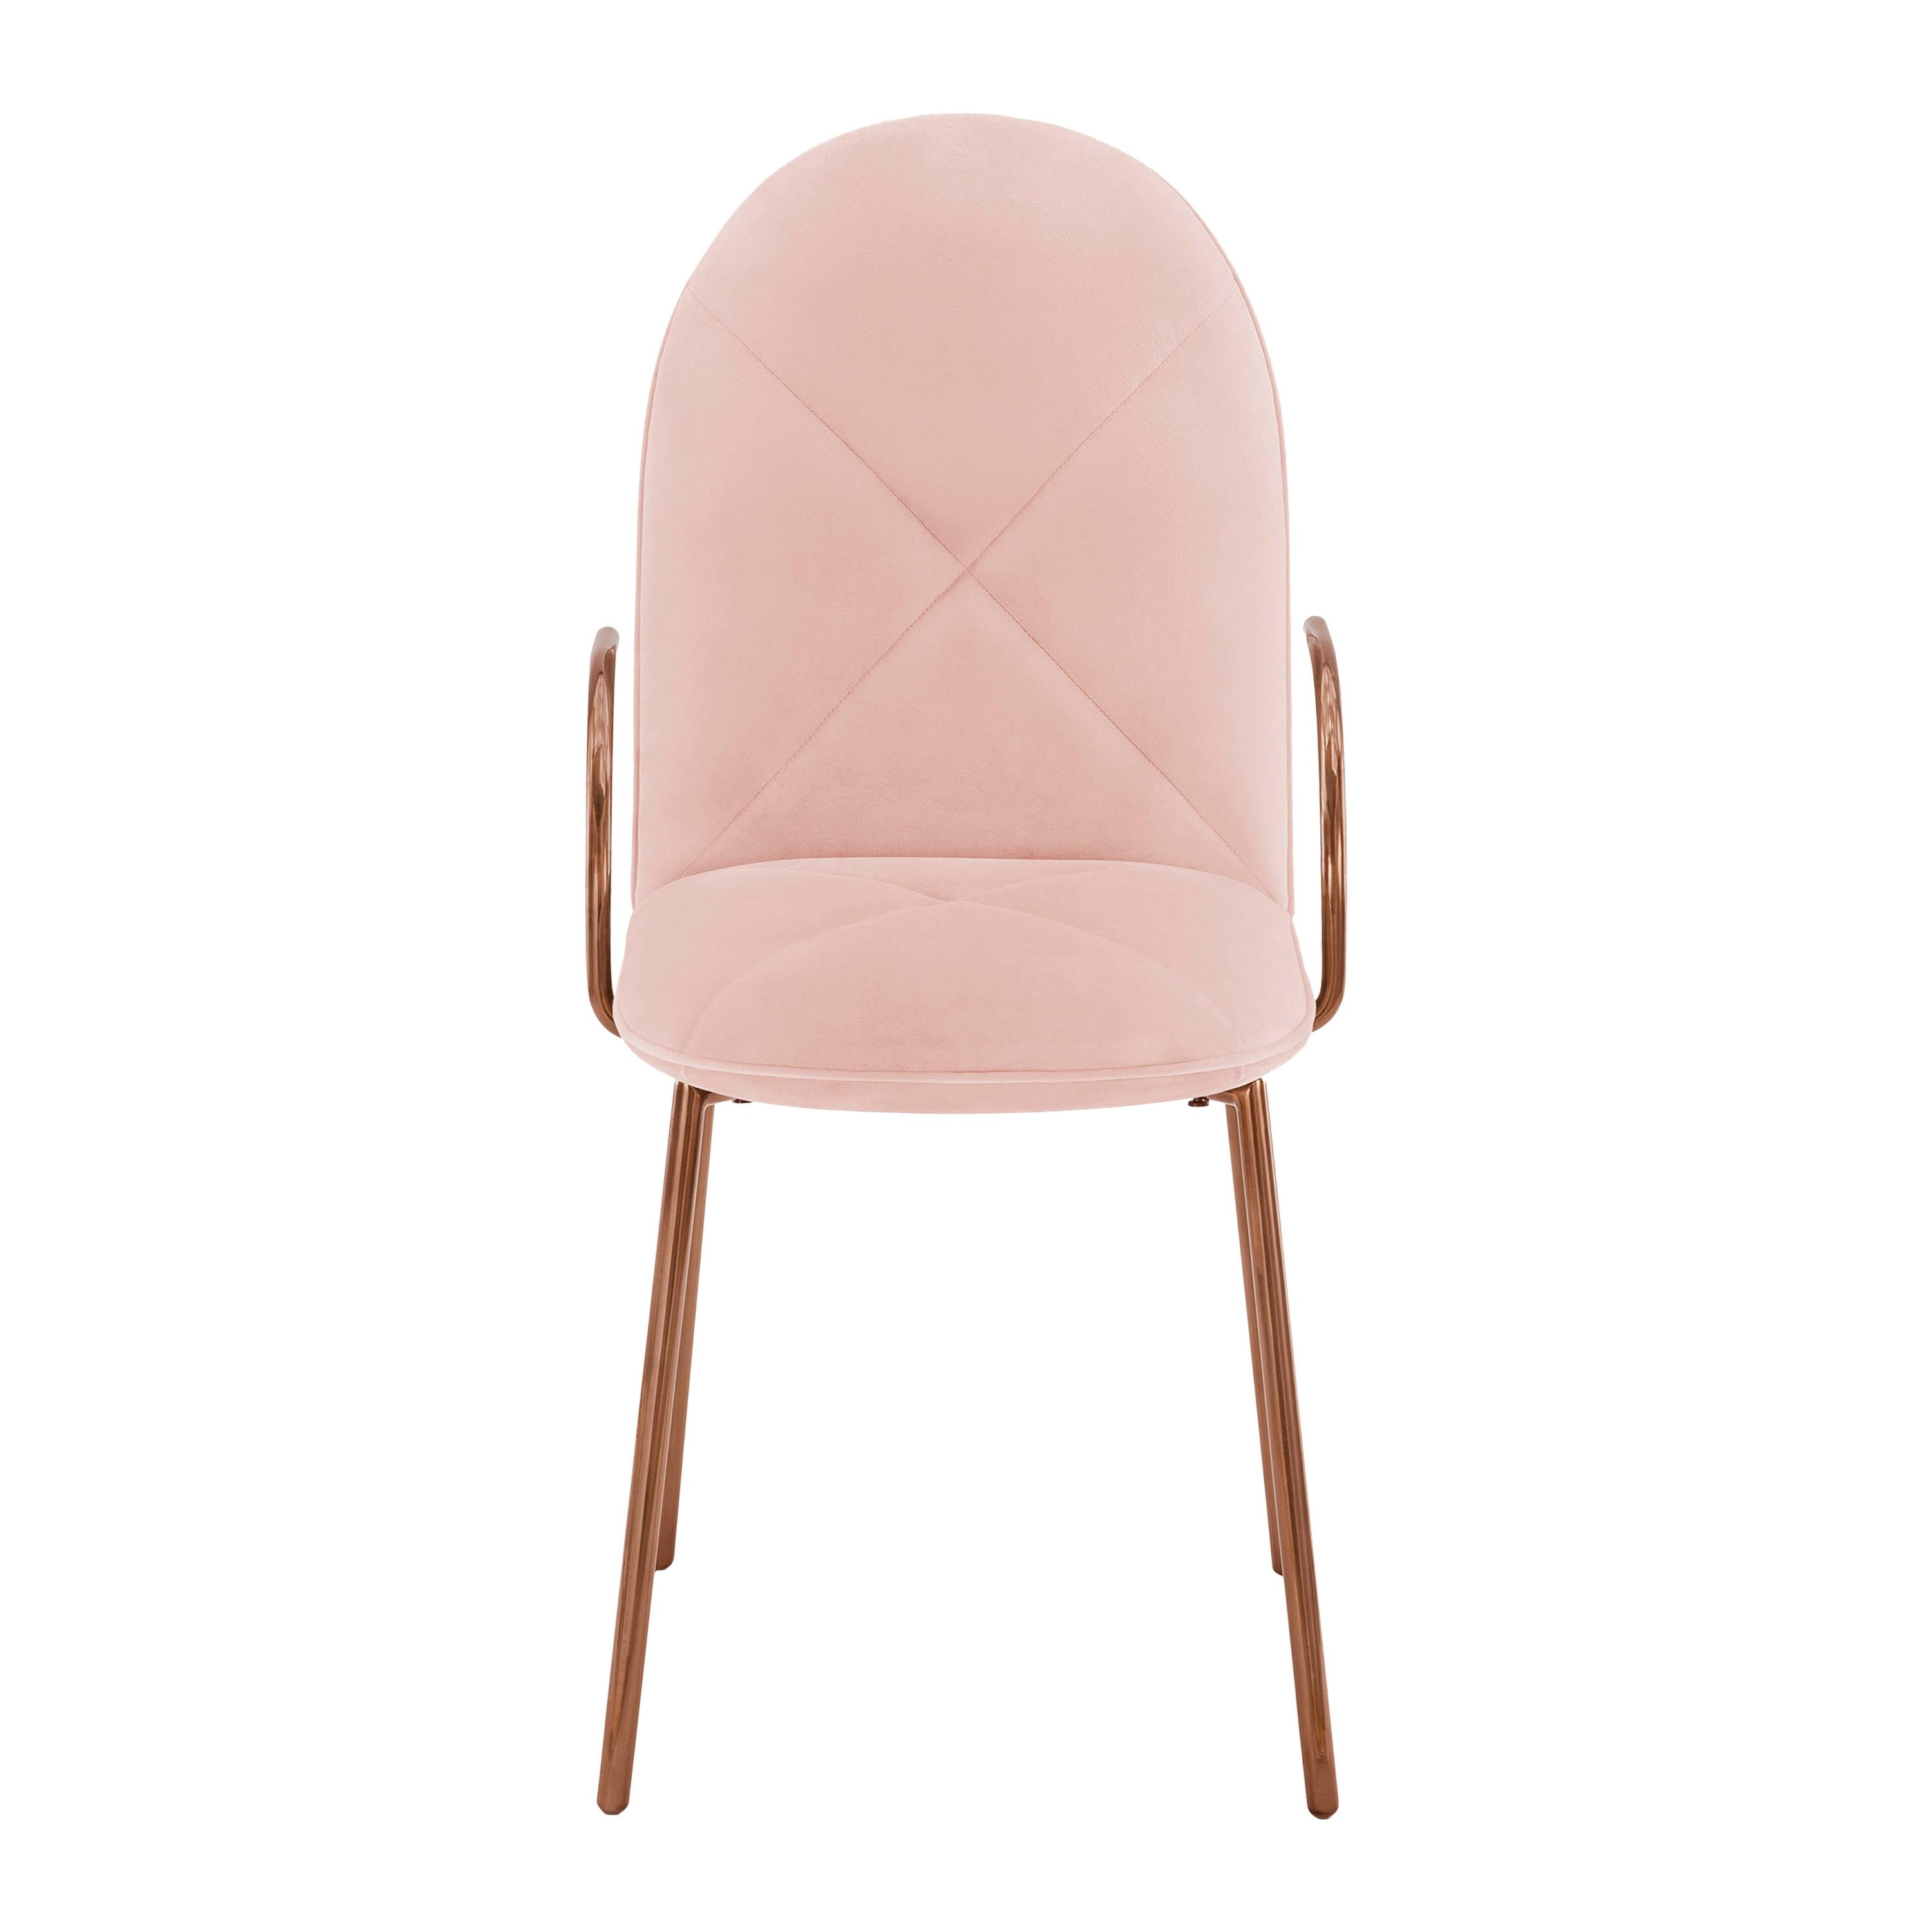 Orion Dining Chair with Plush Pink Velvet and Rose Gold Arms by Nika Zupanc